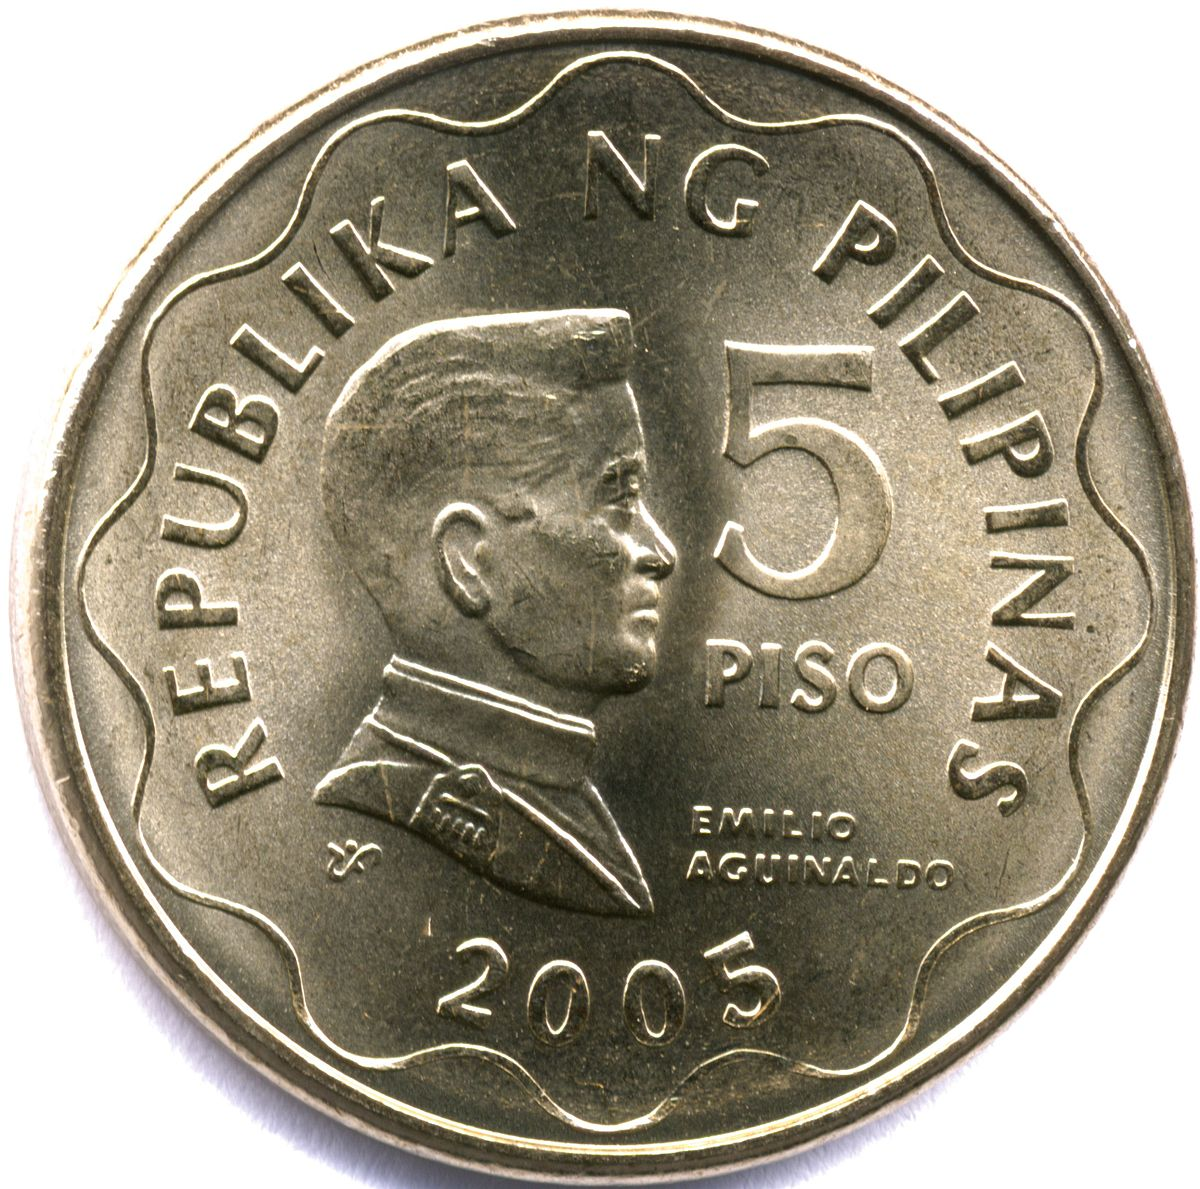 Philippine five peso coin - Wikipedia